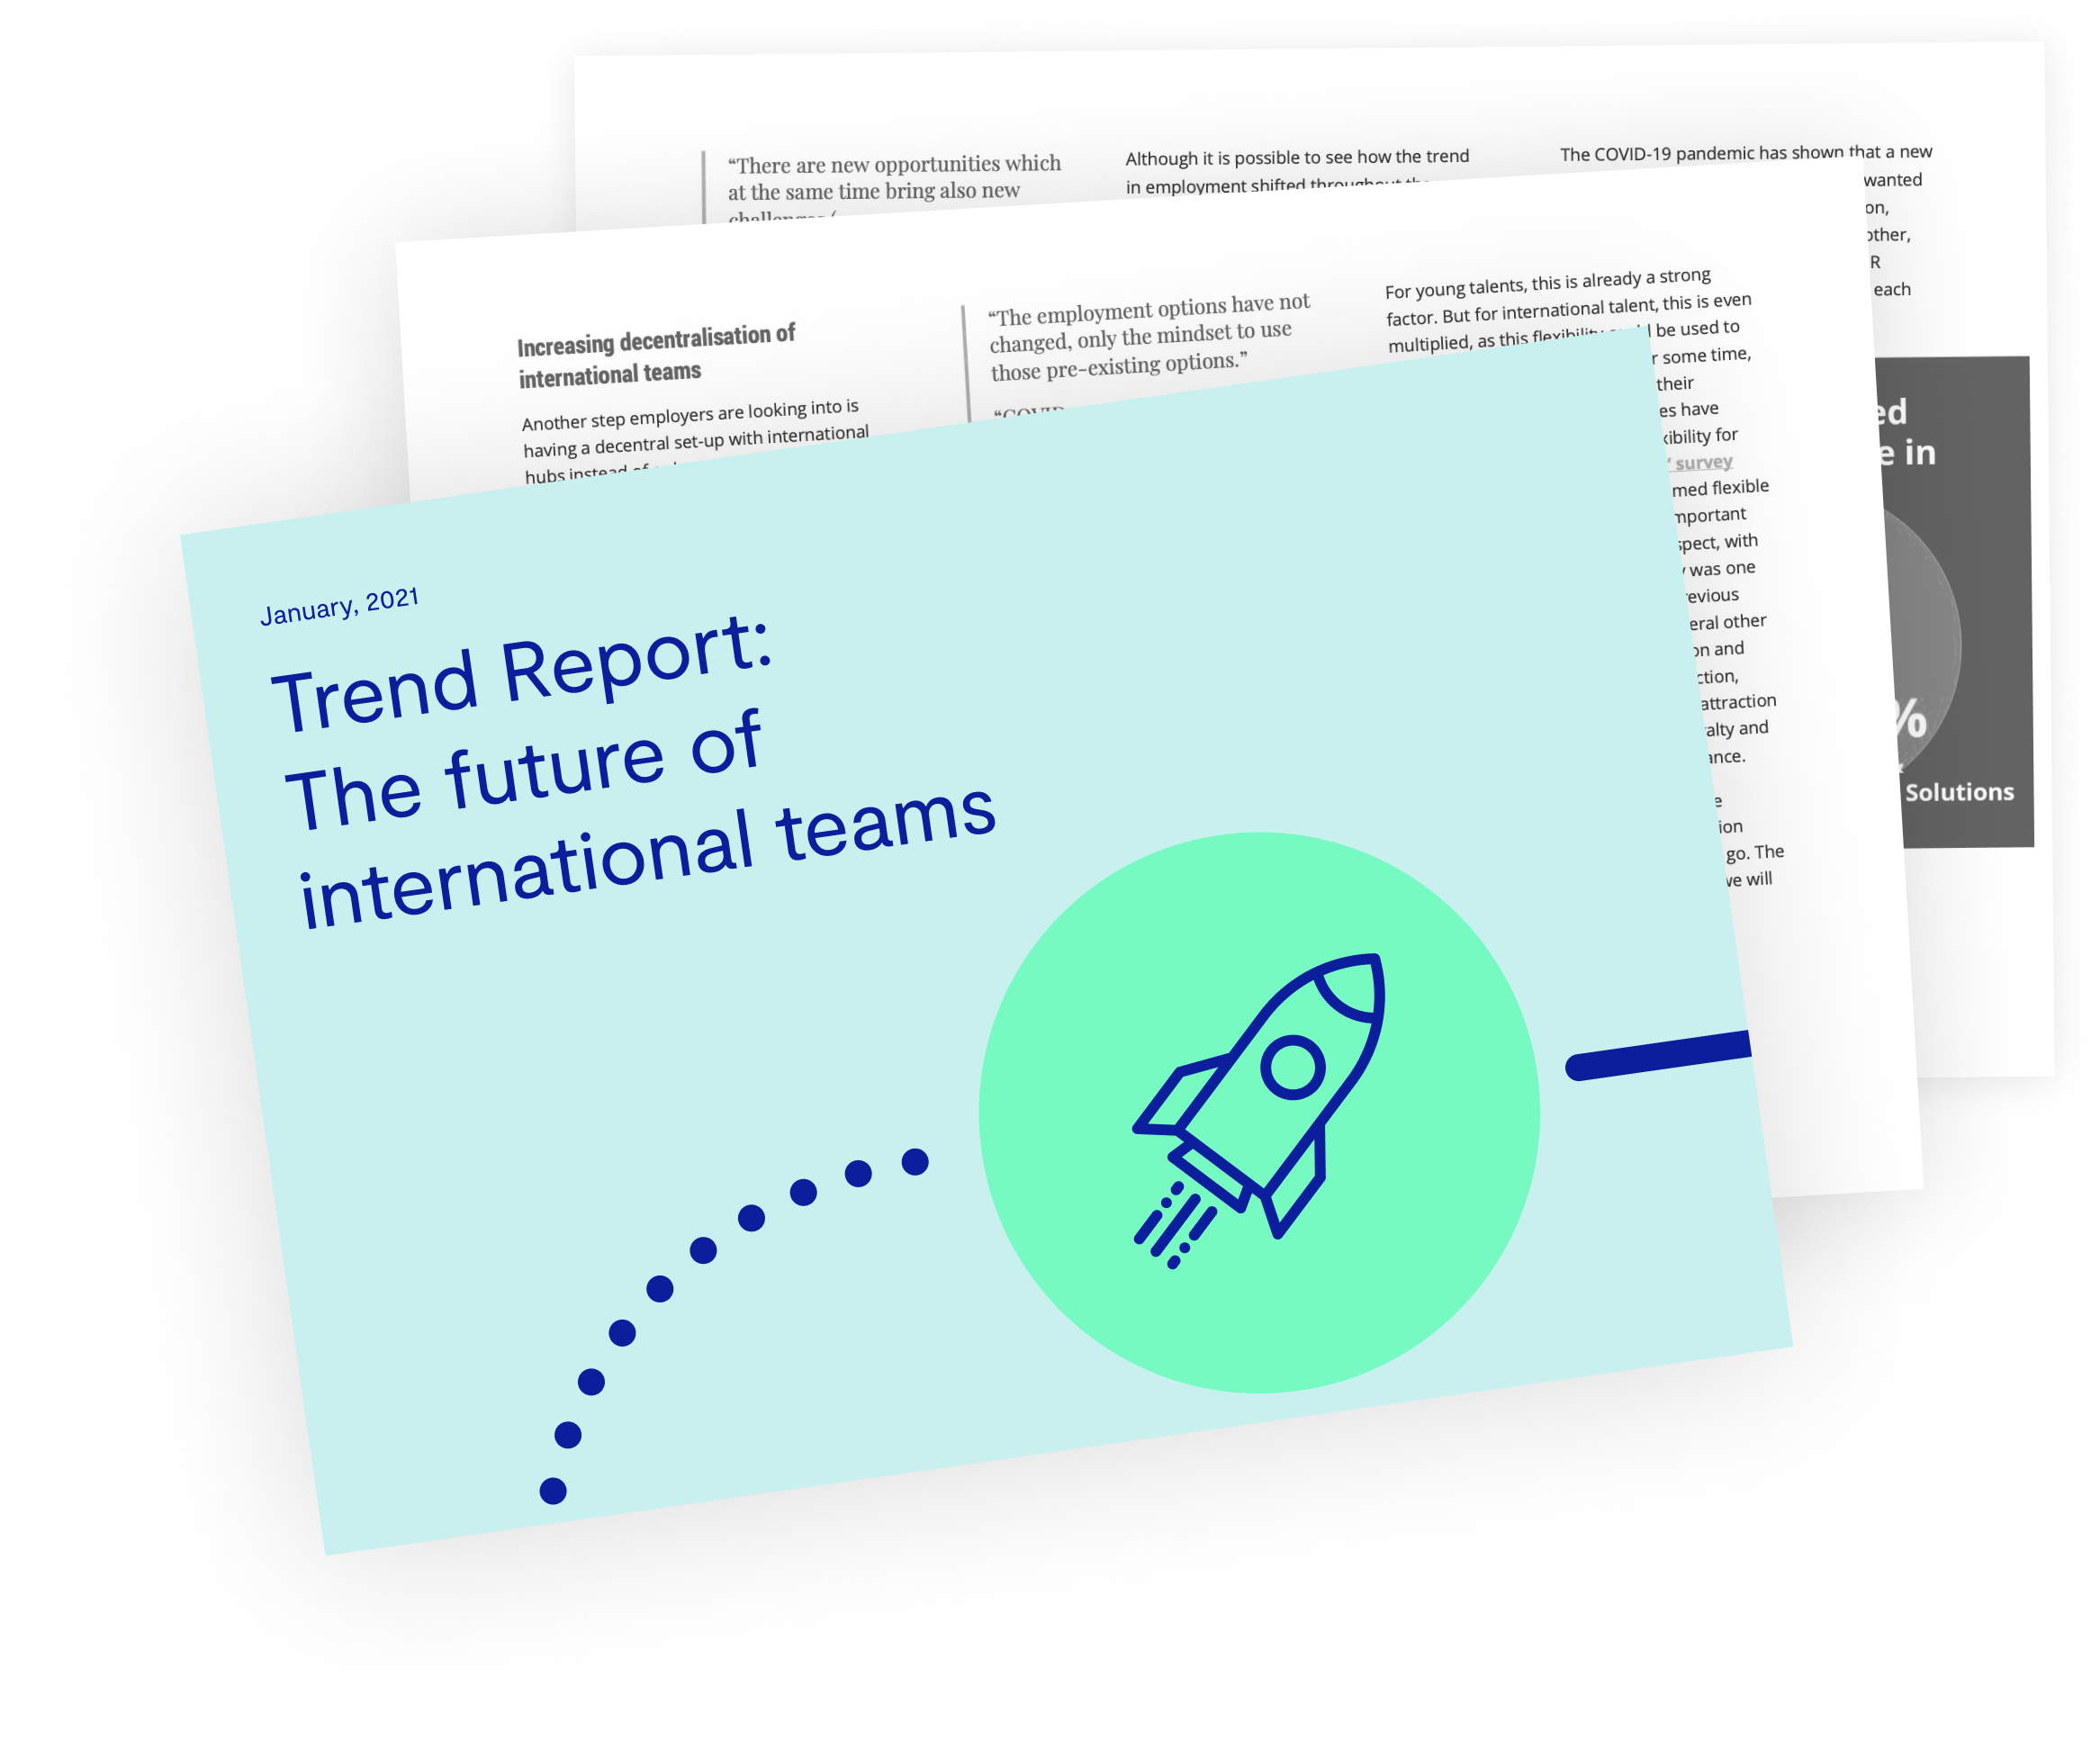 Trend Report: The Future of International Teams